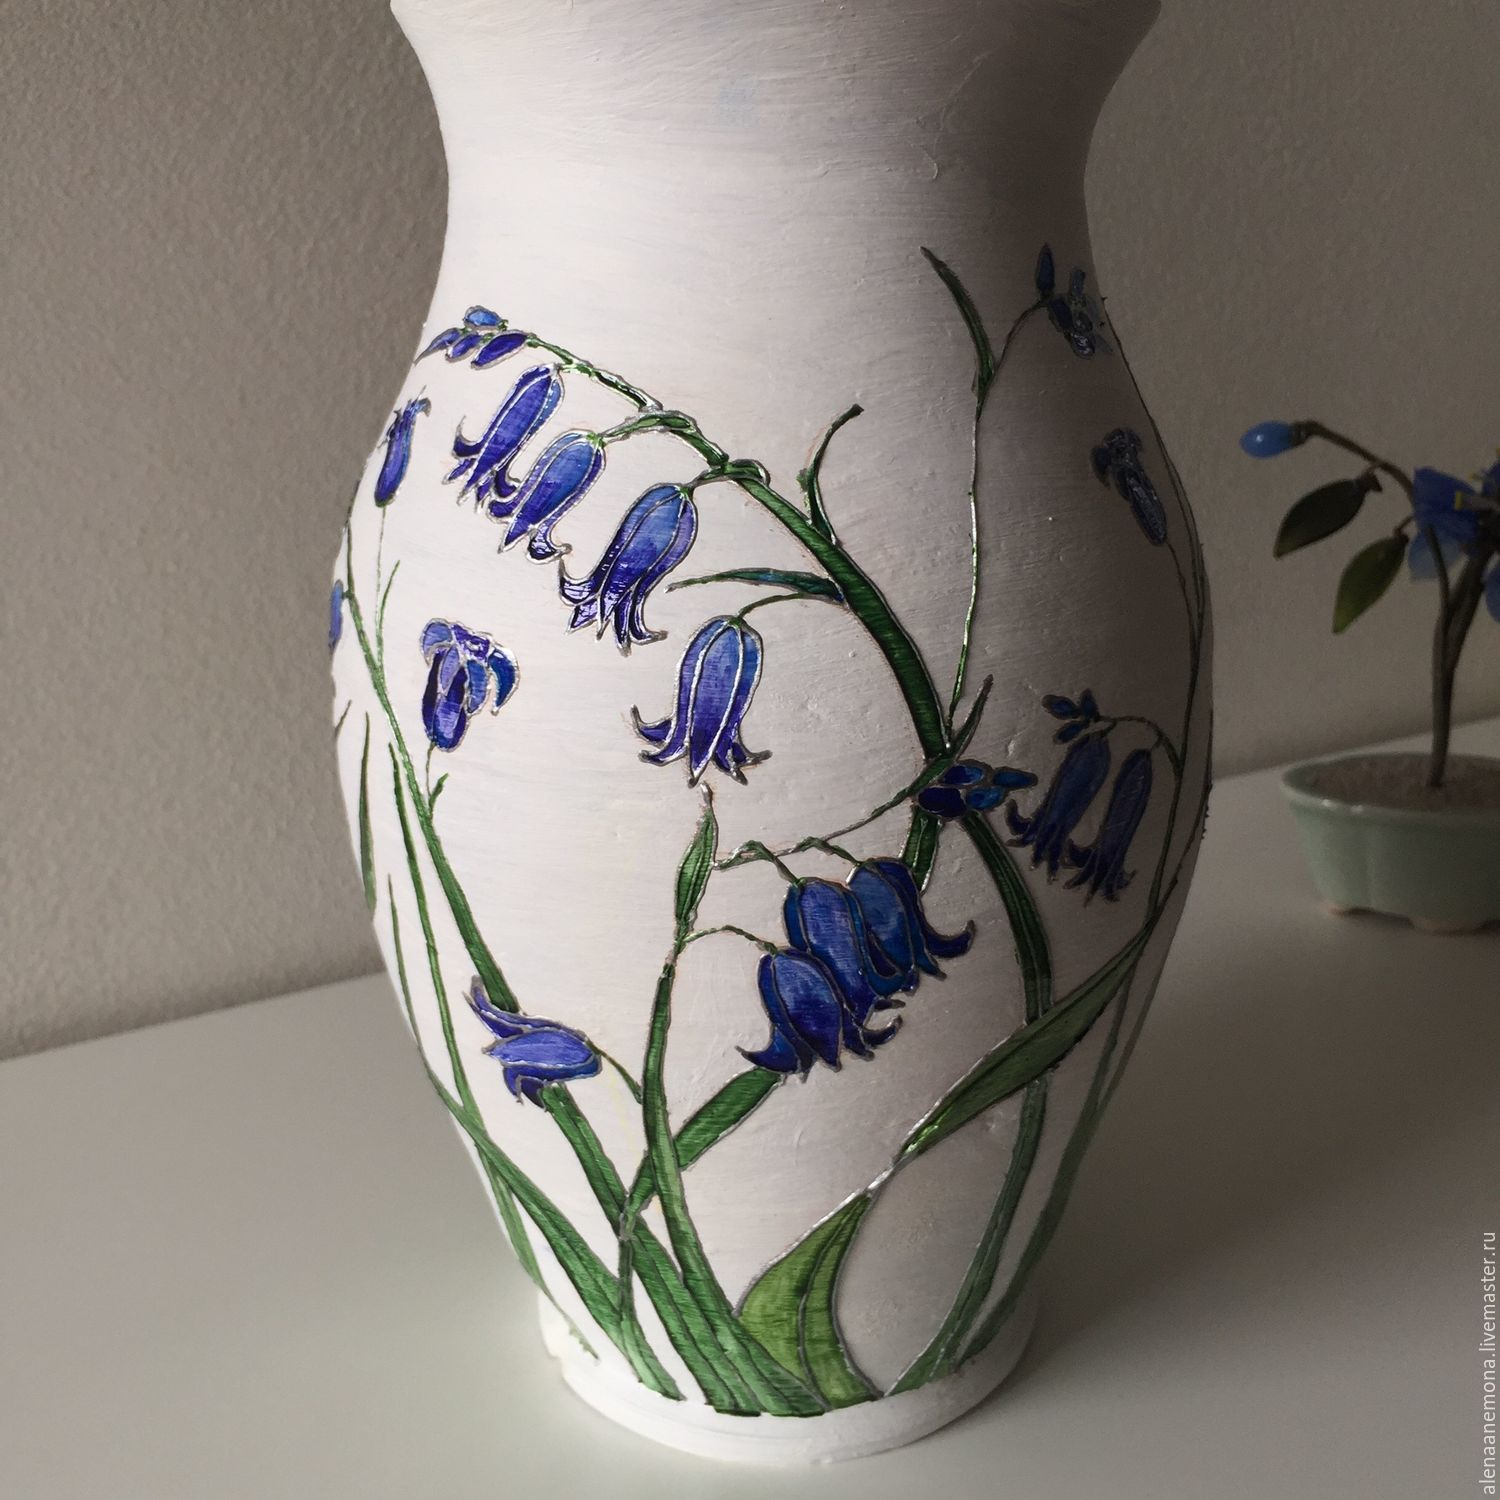 Vase Decorative Hand Painted Shop Online On Livemaster With